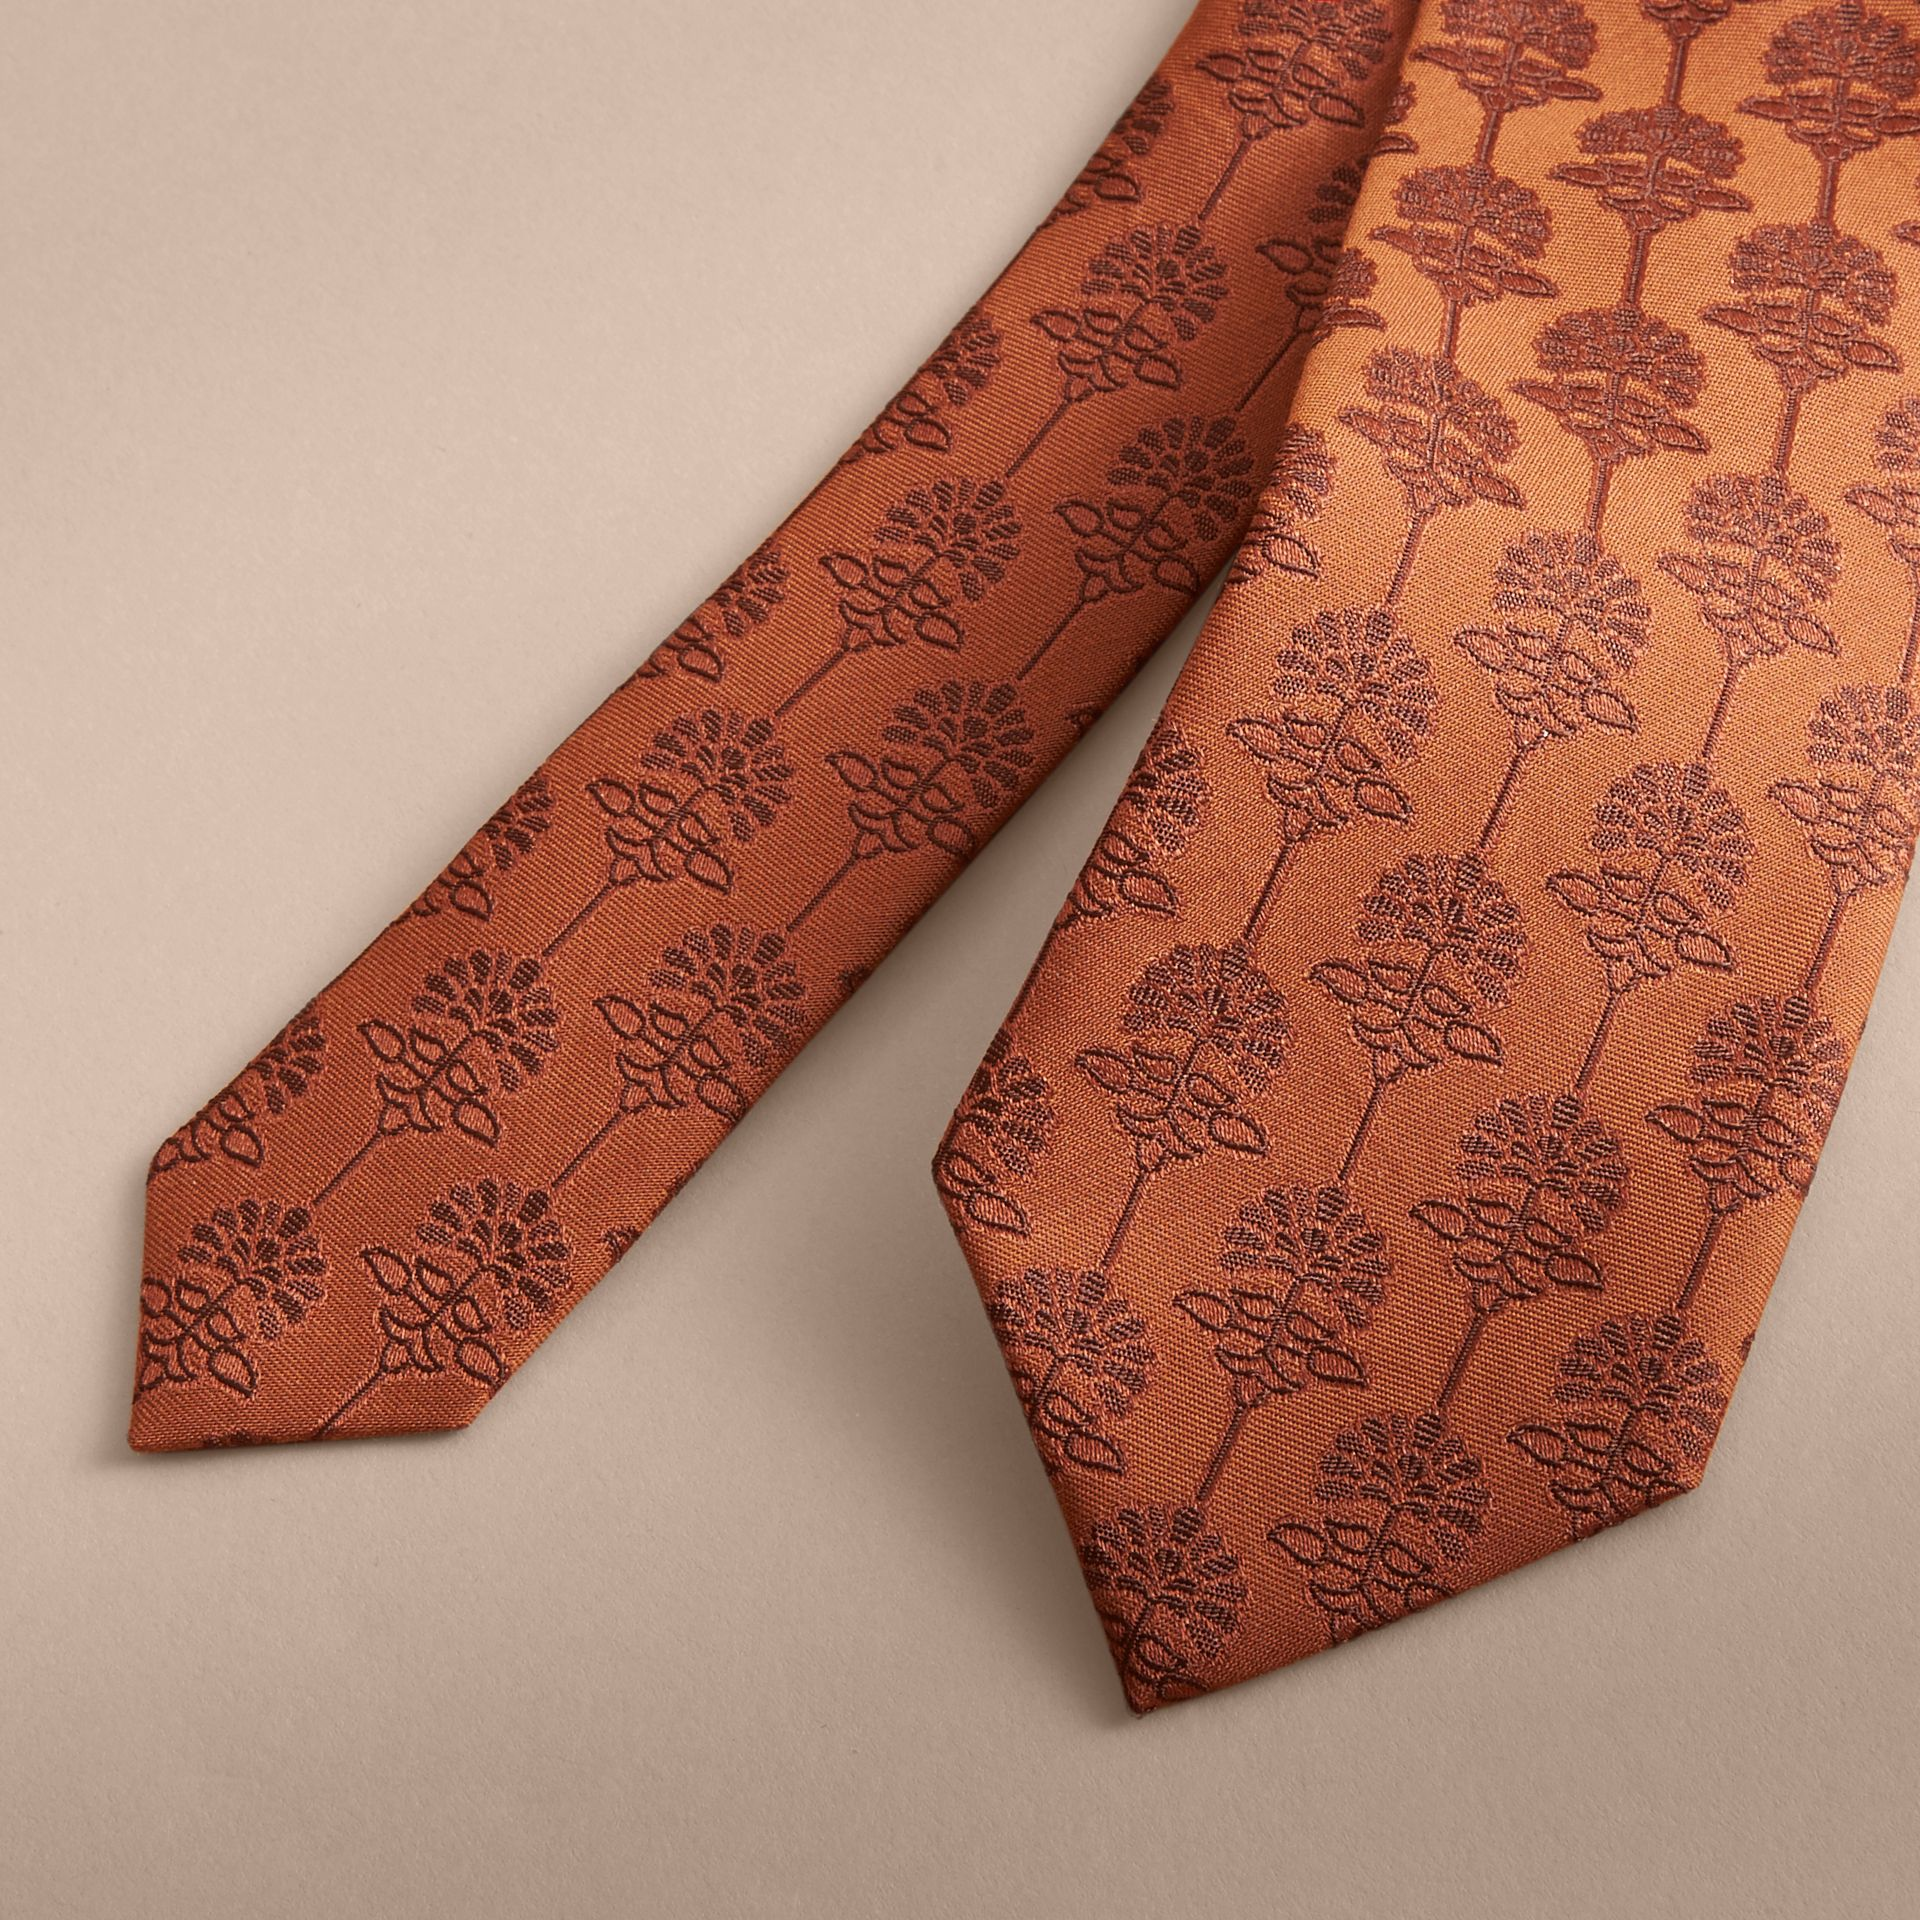 Slim Cut Floral Jacquard Silk Cotton Tie in Russet - Men | Burberry - gallery image 2